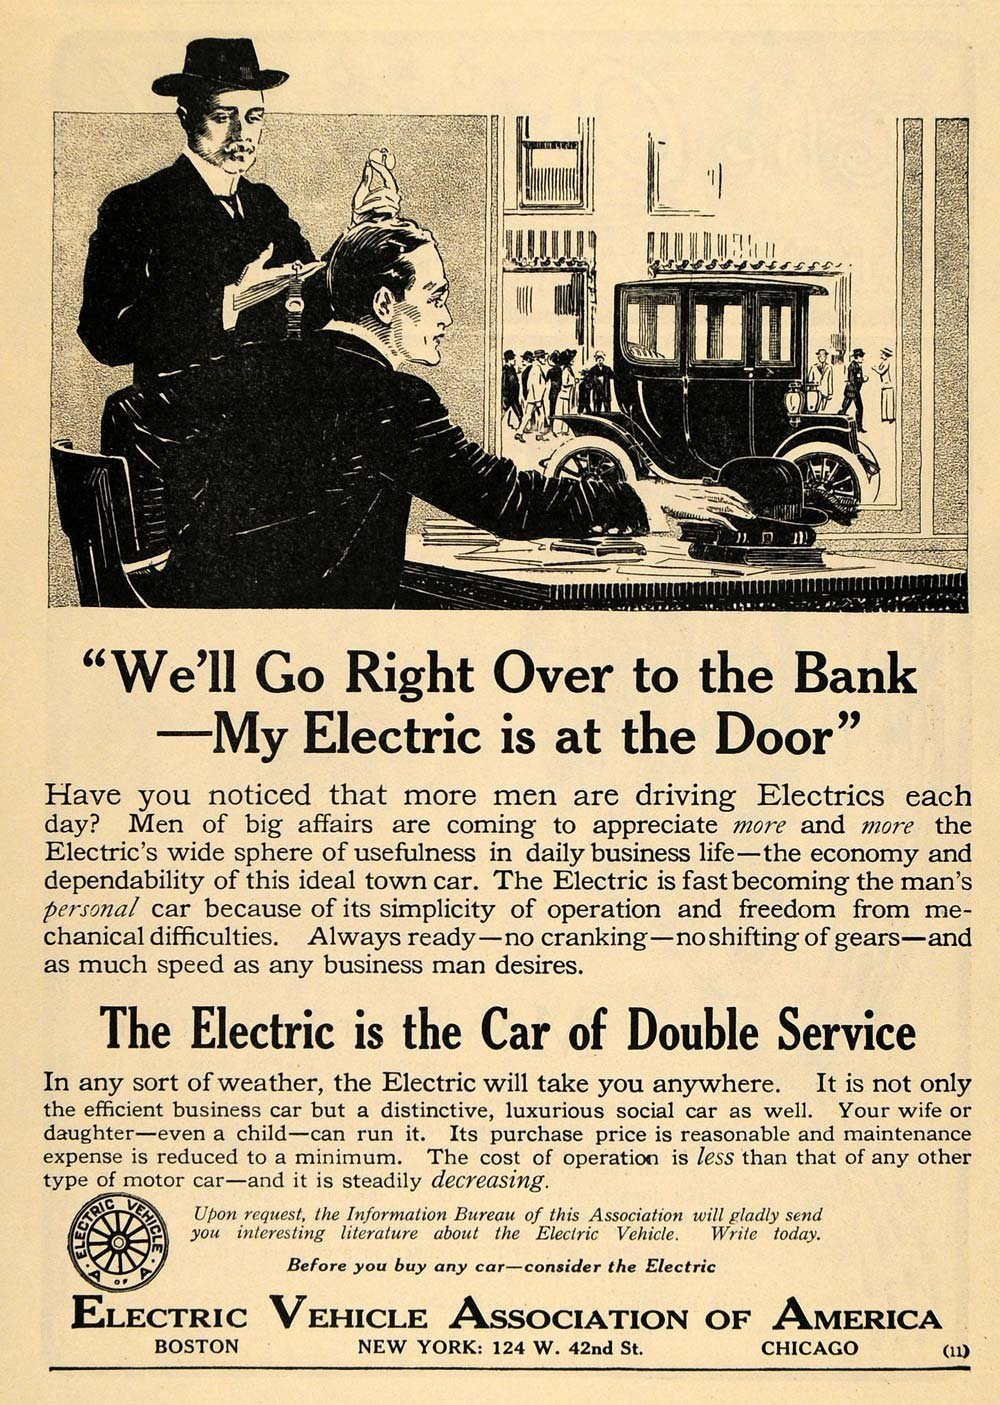 Electric Vehicle Association ad, 1912